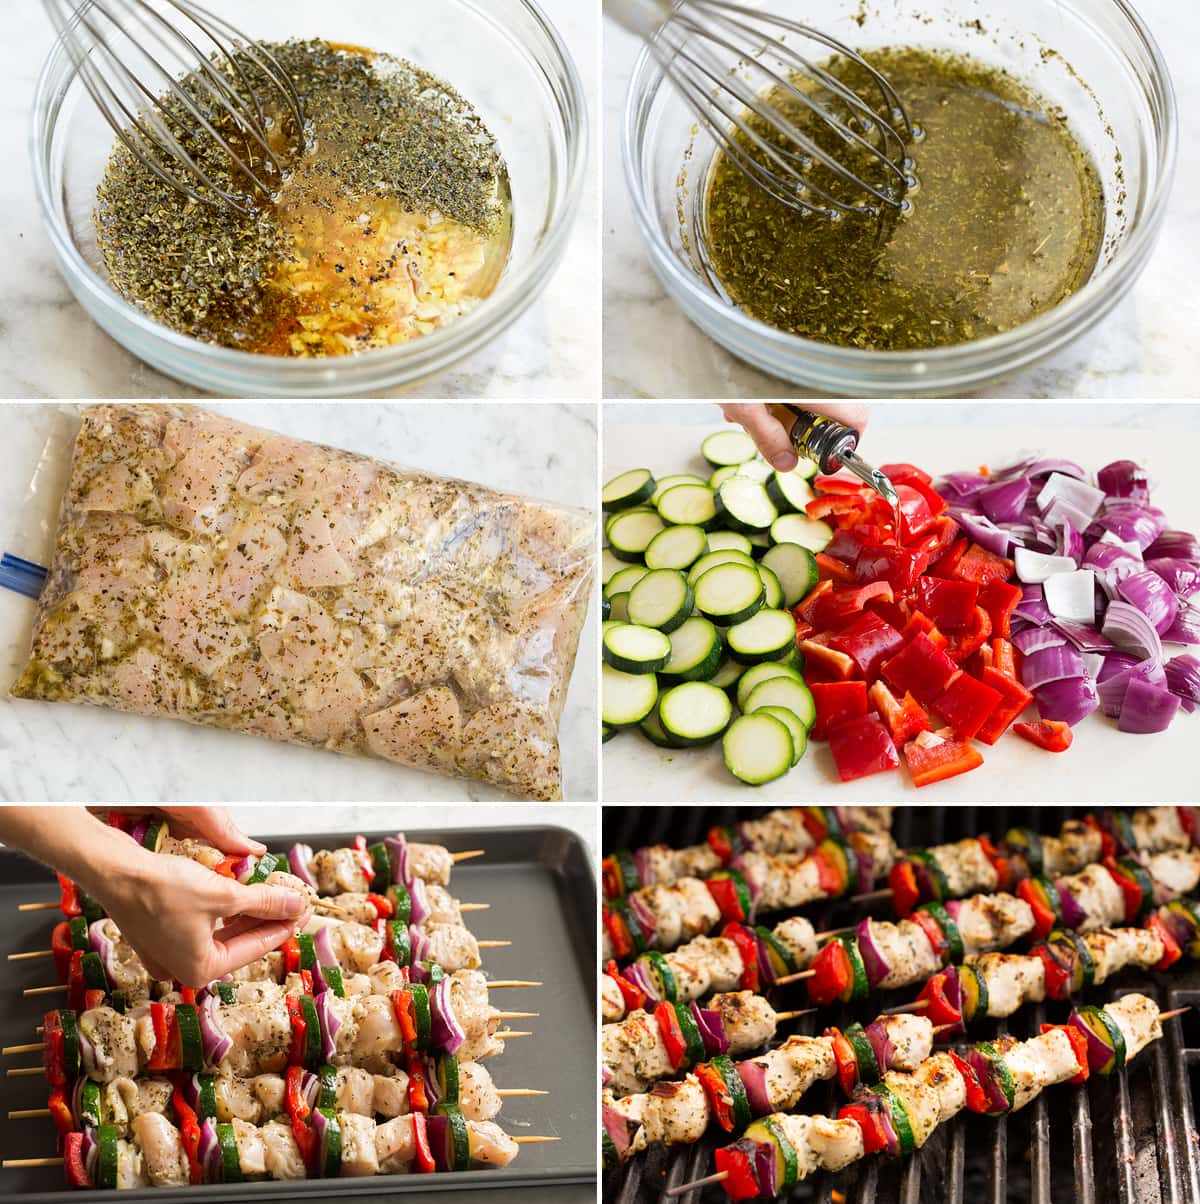 Collage of 6 images showing steps of making marinade, greek chicken soaking, drizzling vegetables with oil, threading ingredients onto skewers and grilling kebabs.